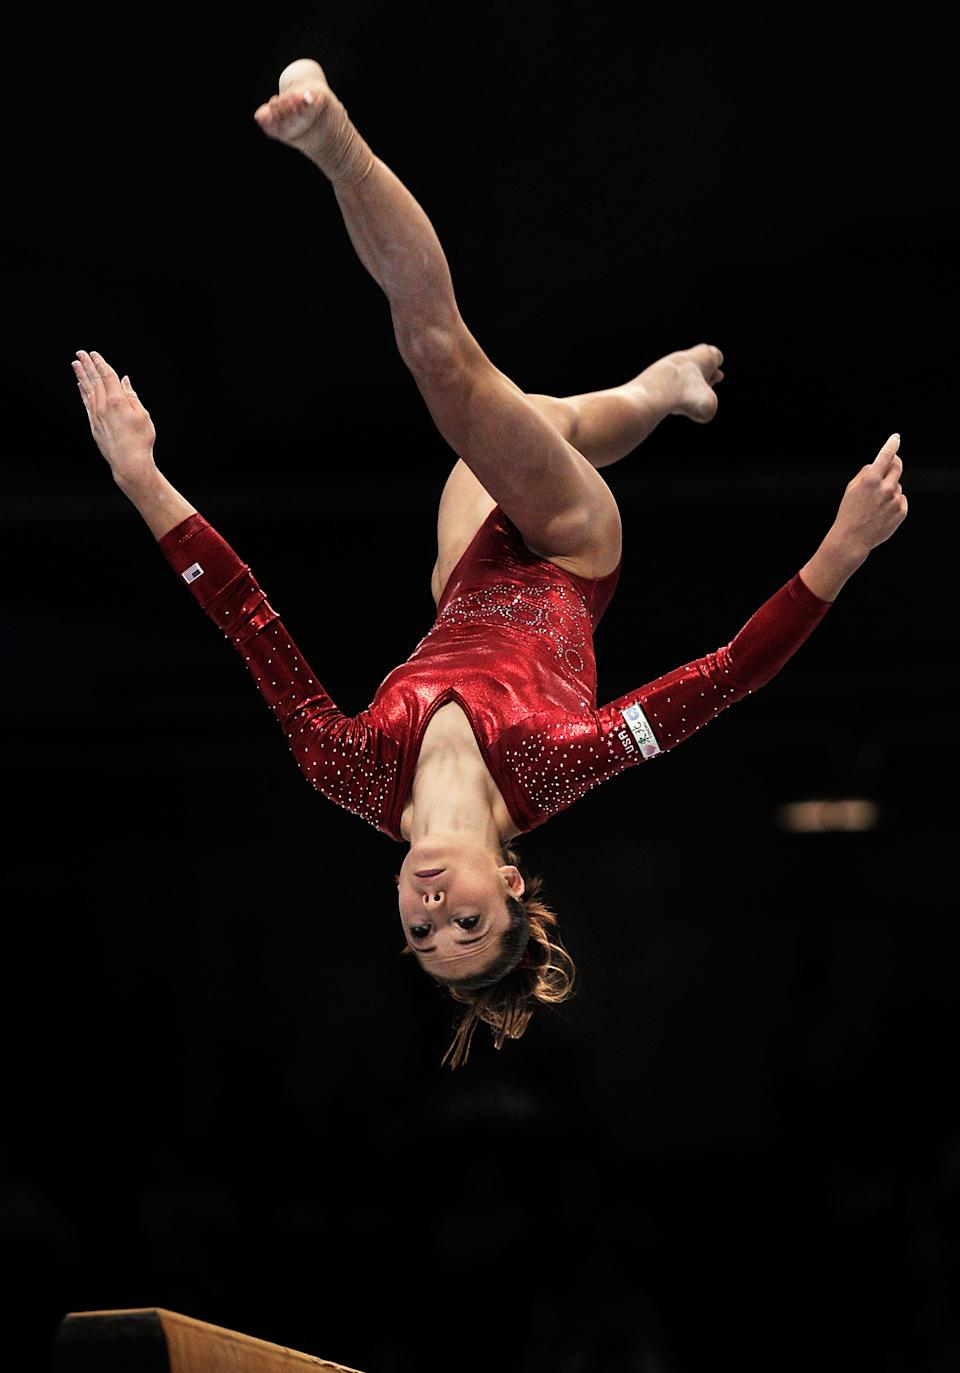 Mc Kayla Maroney of the USA competes on the beam aparatus in the women's qualification during day two of the Artistic Gymnastics World Championships Tokyo 2011. (Adam Pretty/Getty Images)